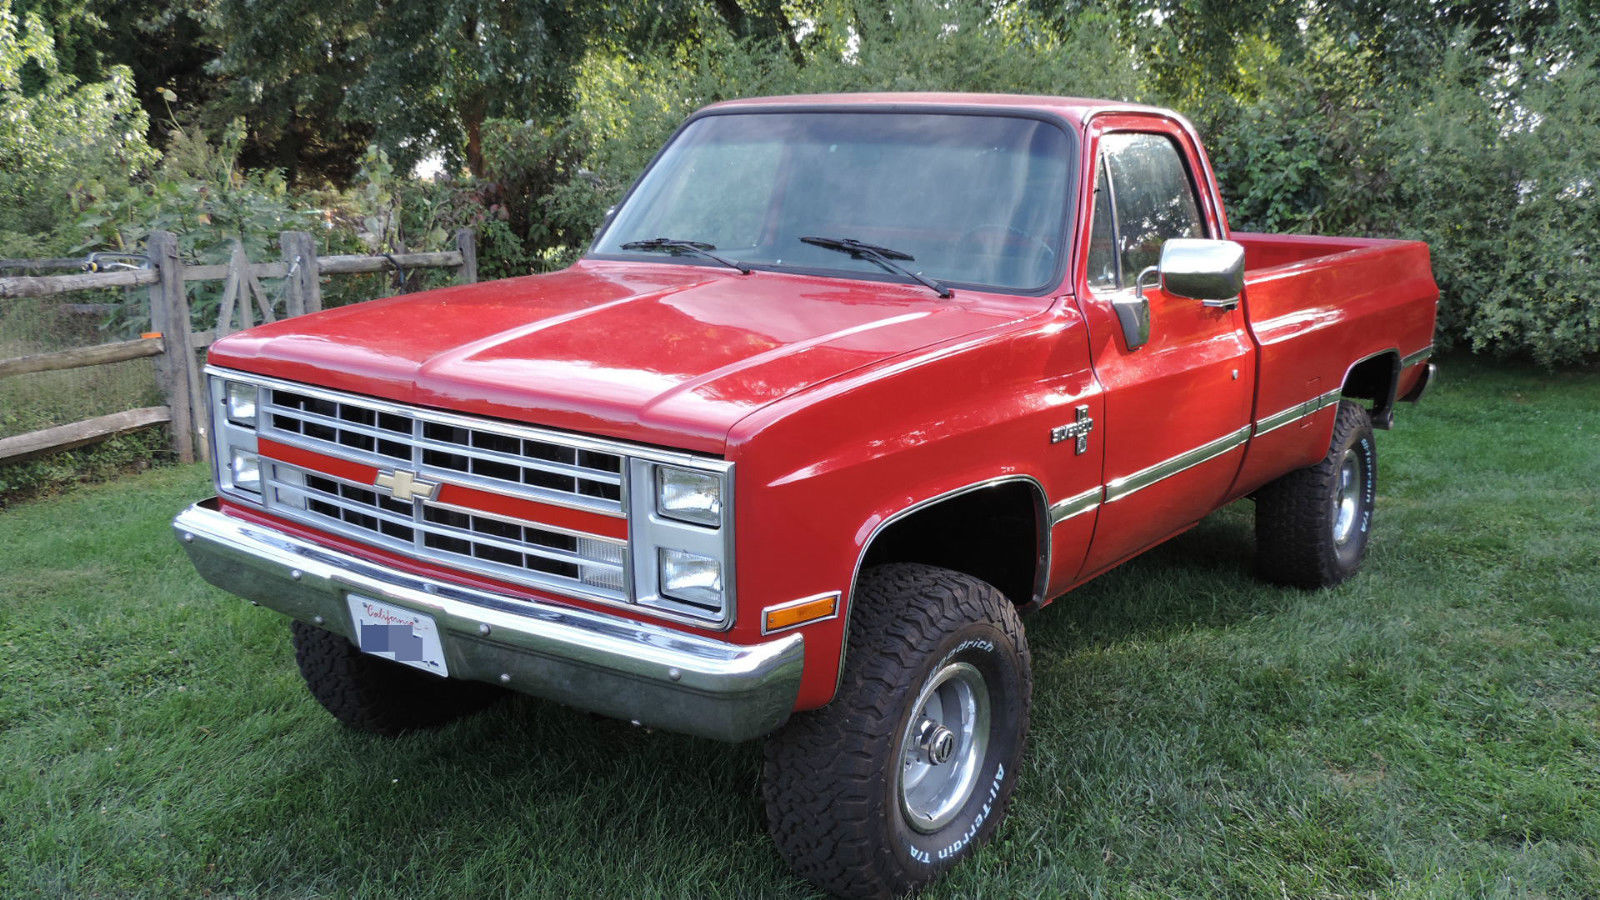 1987 chevrolet k10 4 4 pickup truck for sale. Black Bedroom Furniture Sets. Home Design Ideas